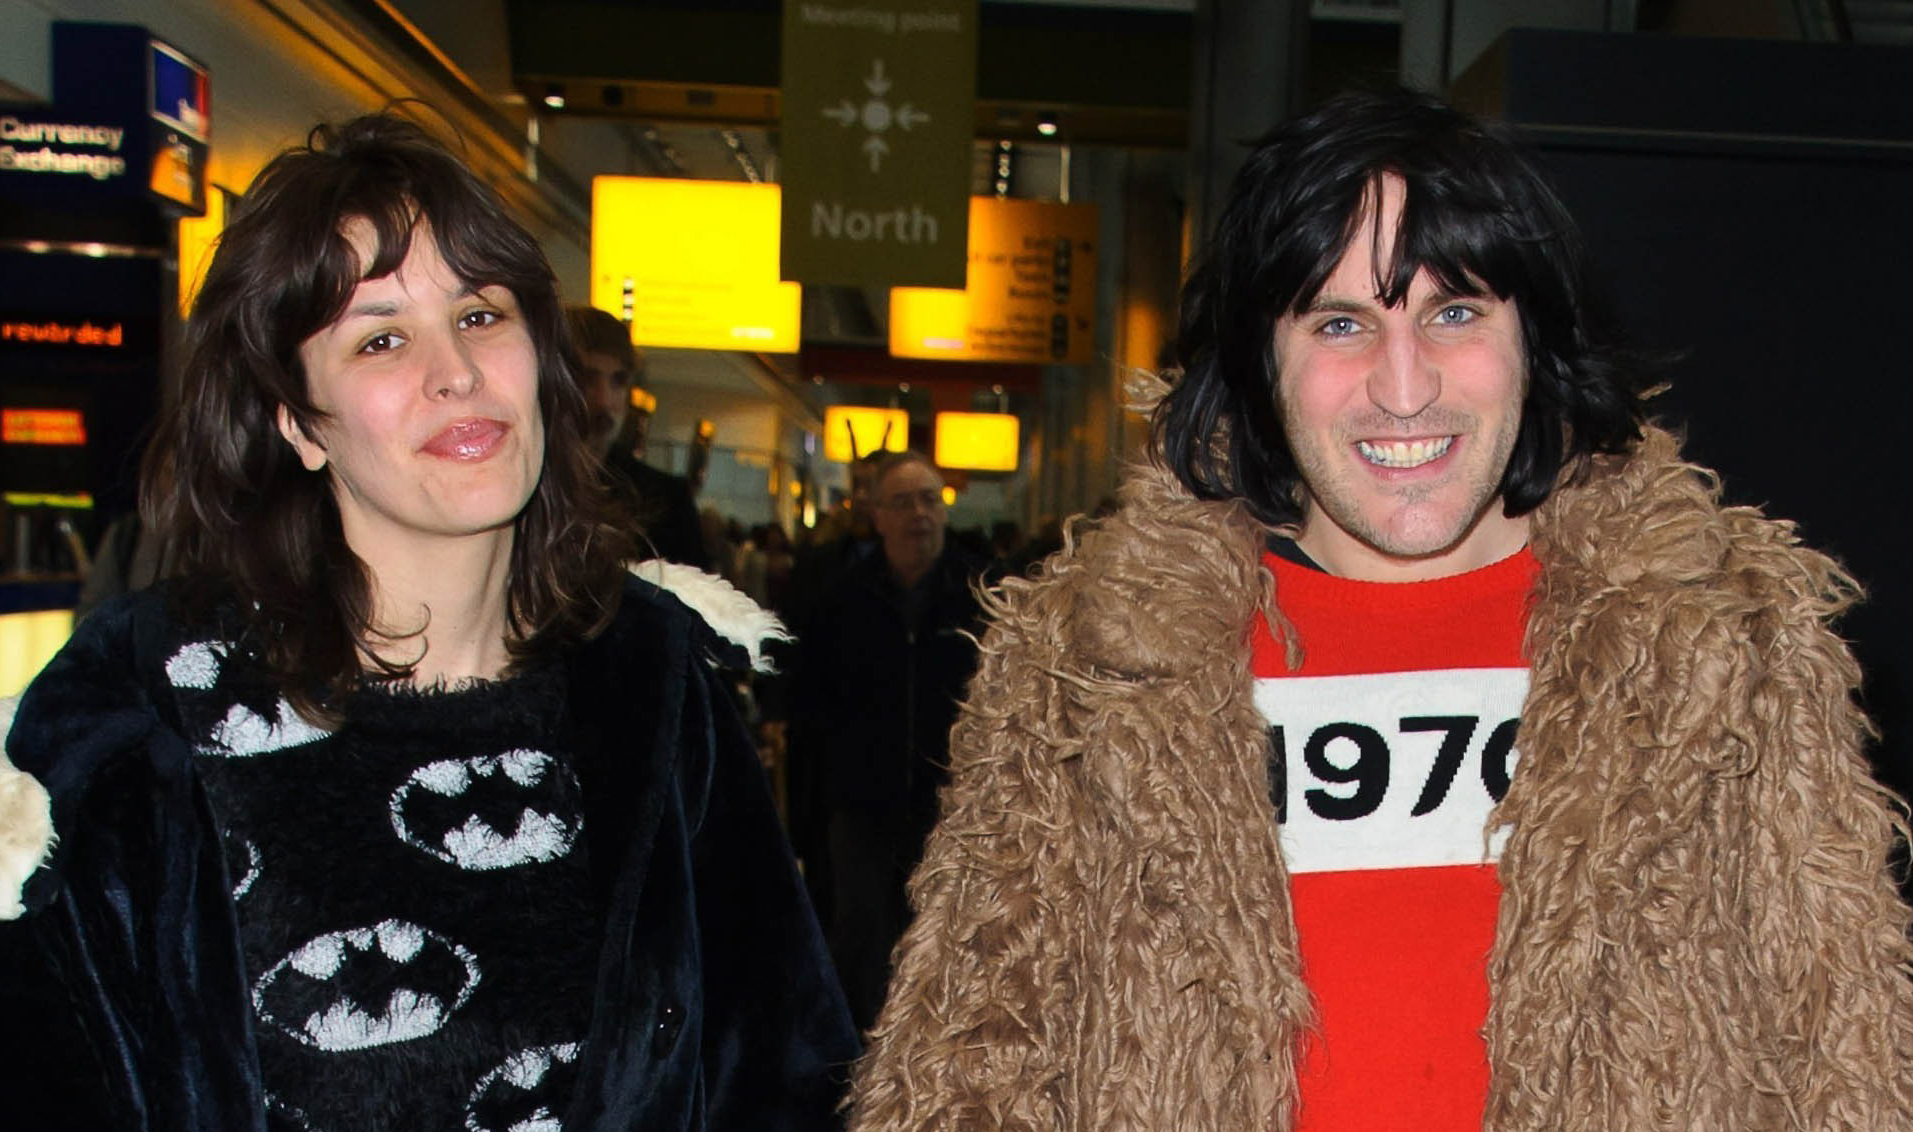 Bake Off's Noel Fielding pictured with his newborn for first time!